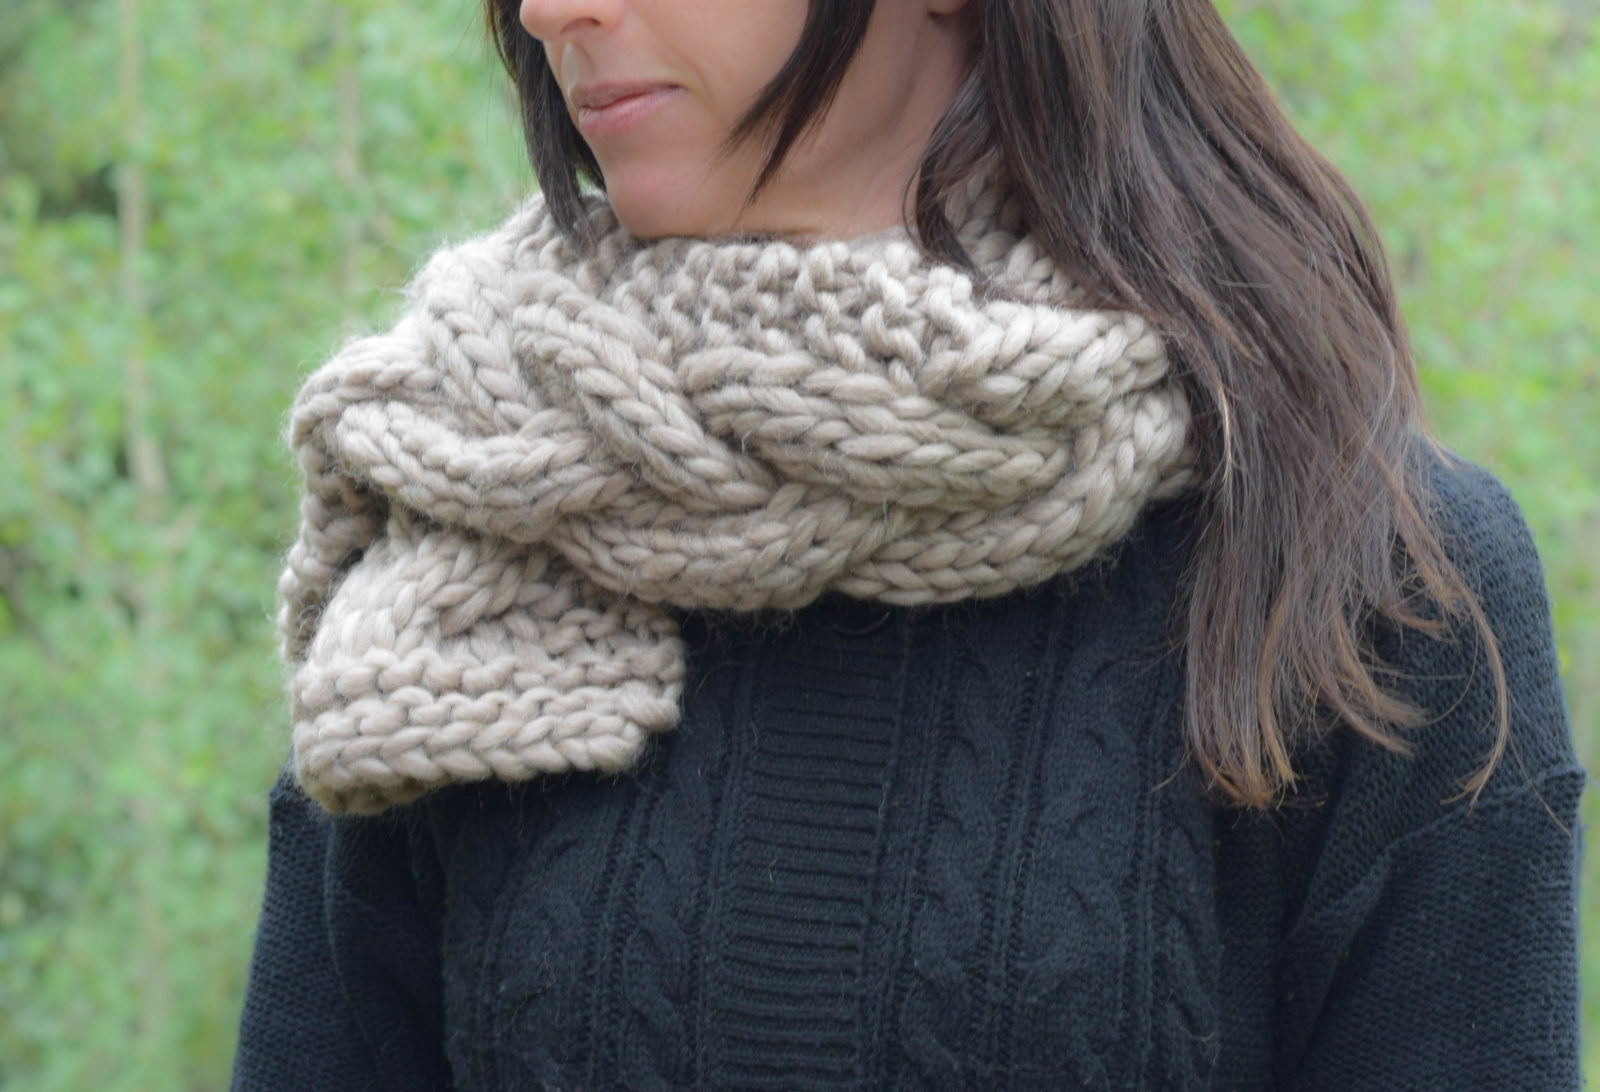 Cable Knit Scarves Patterns : The Cascades Knit Scarf   Mama In A Stitch